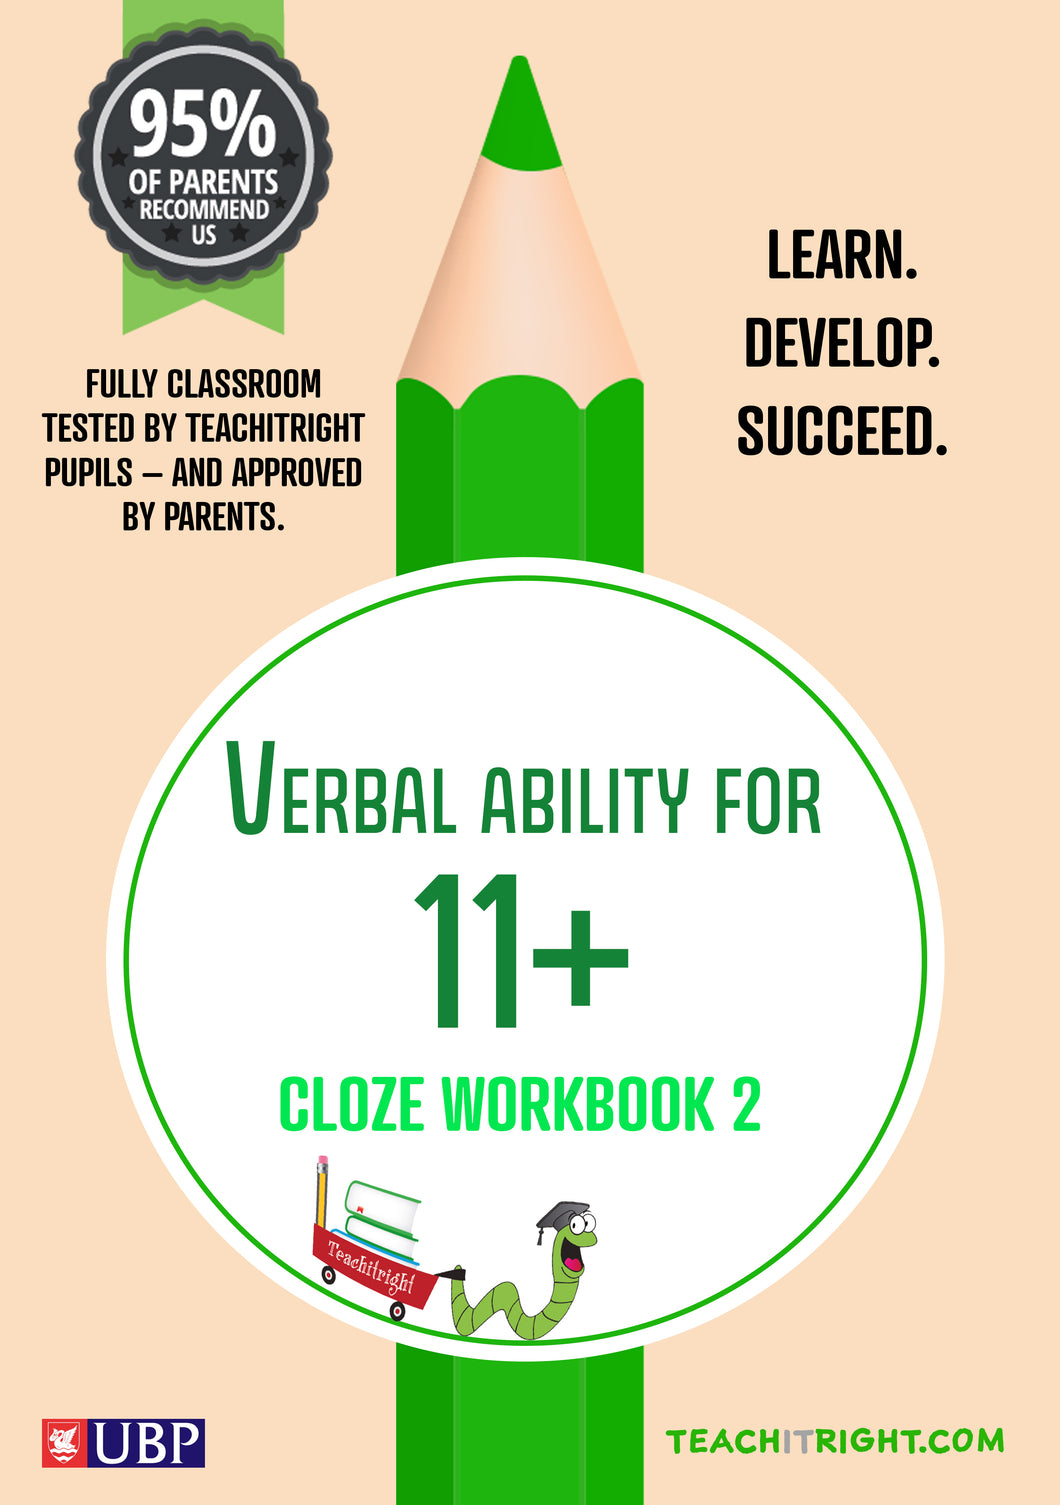 11+ Tuition Guides: VERBAL ABILITY – Cloze Workbook 2